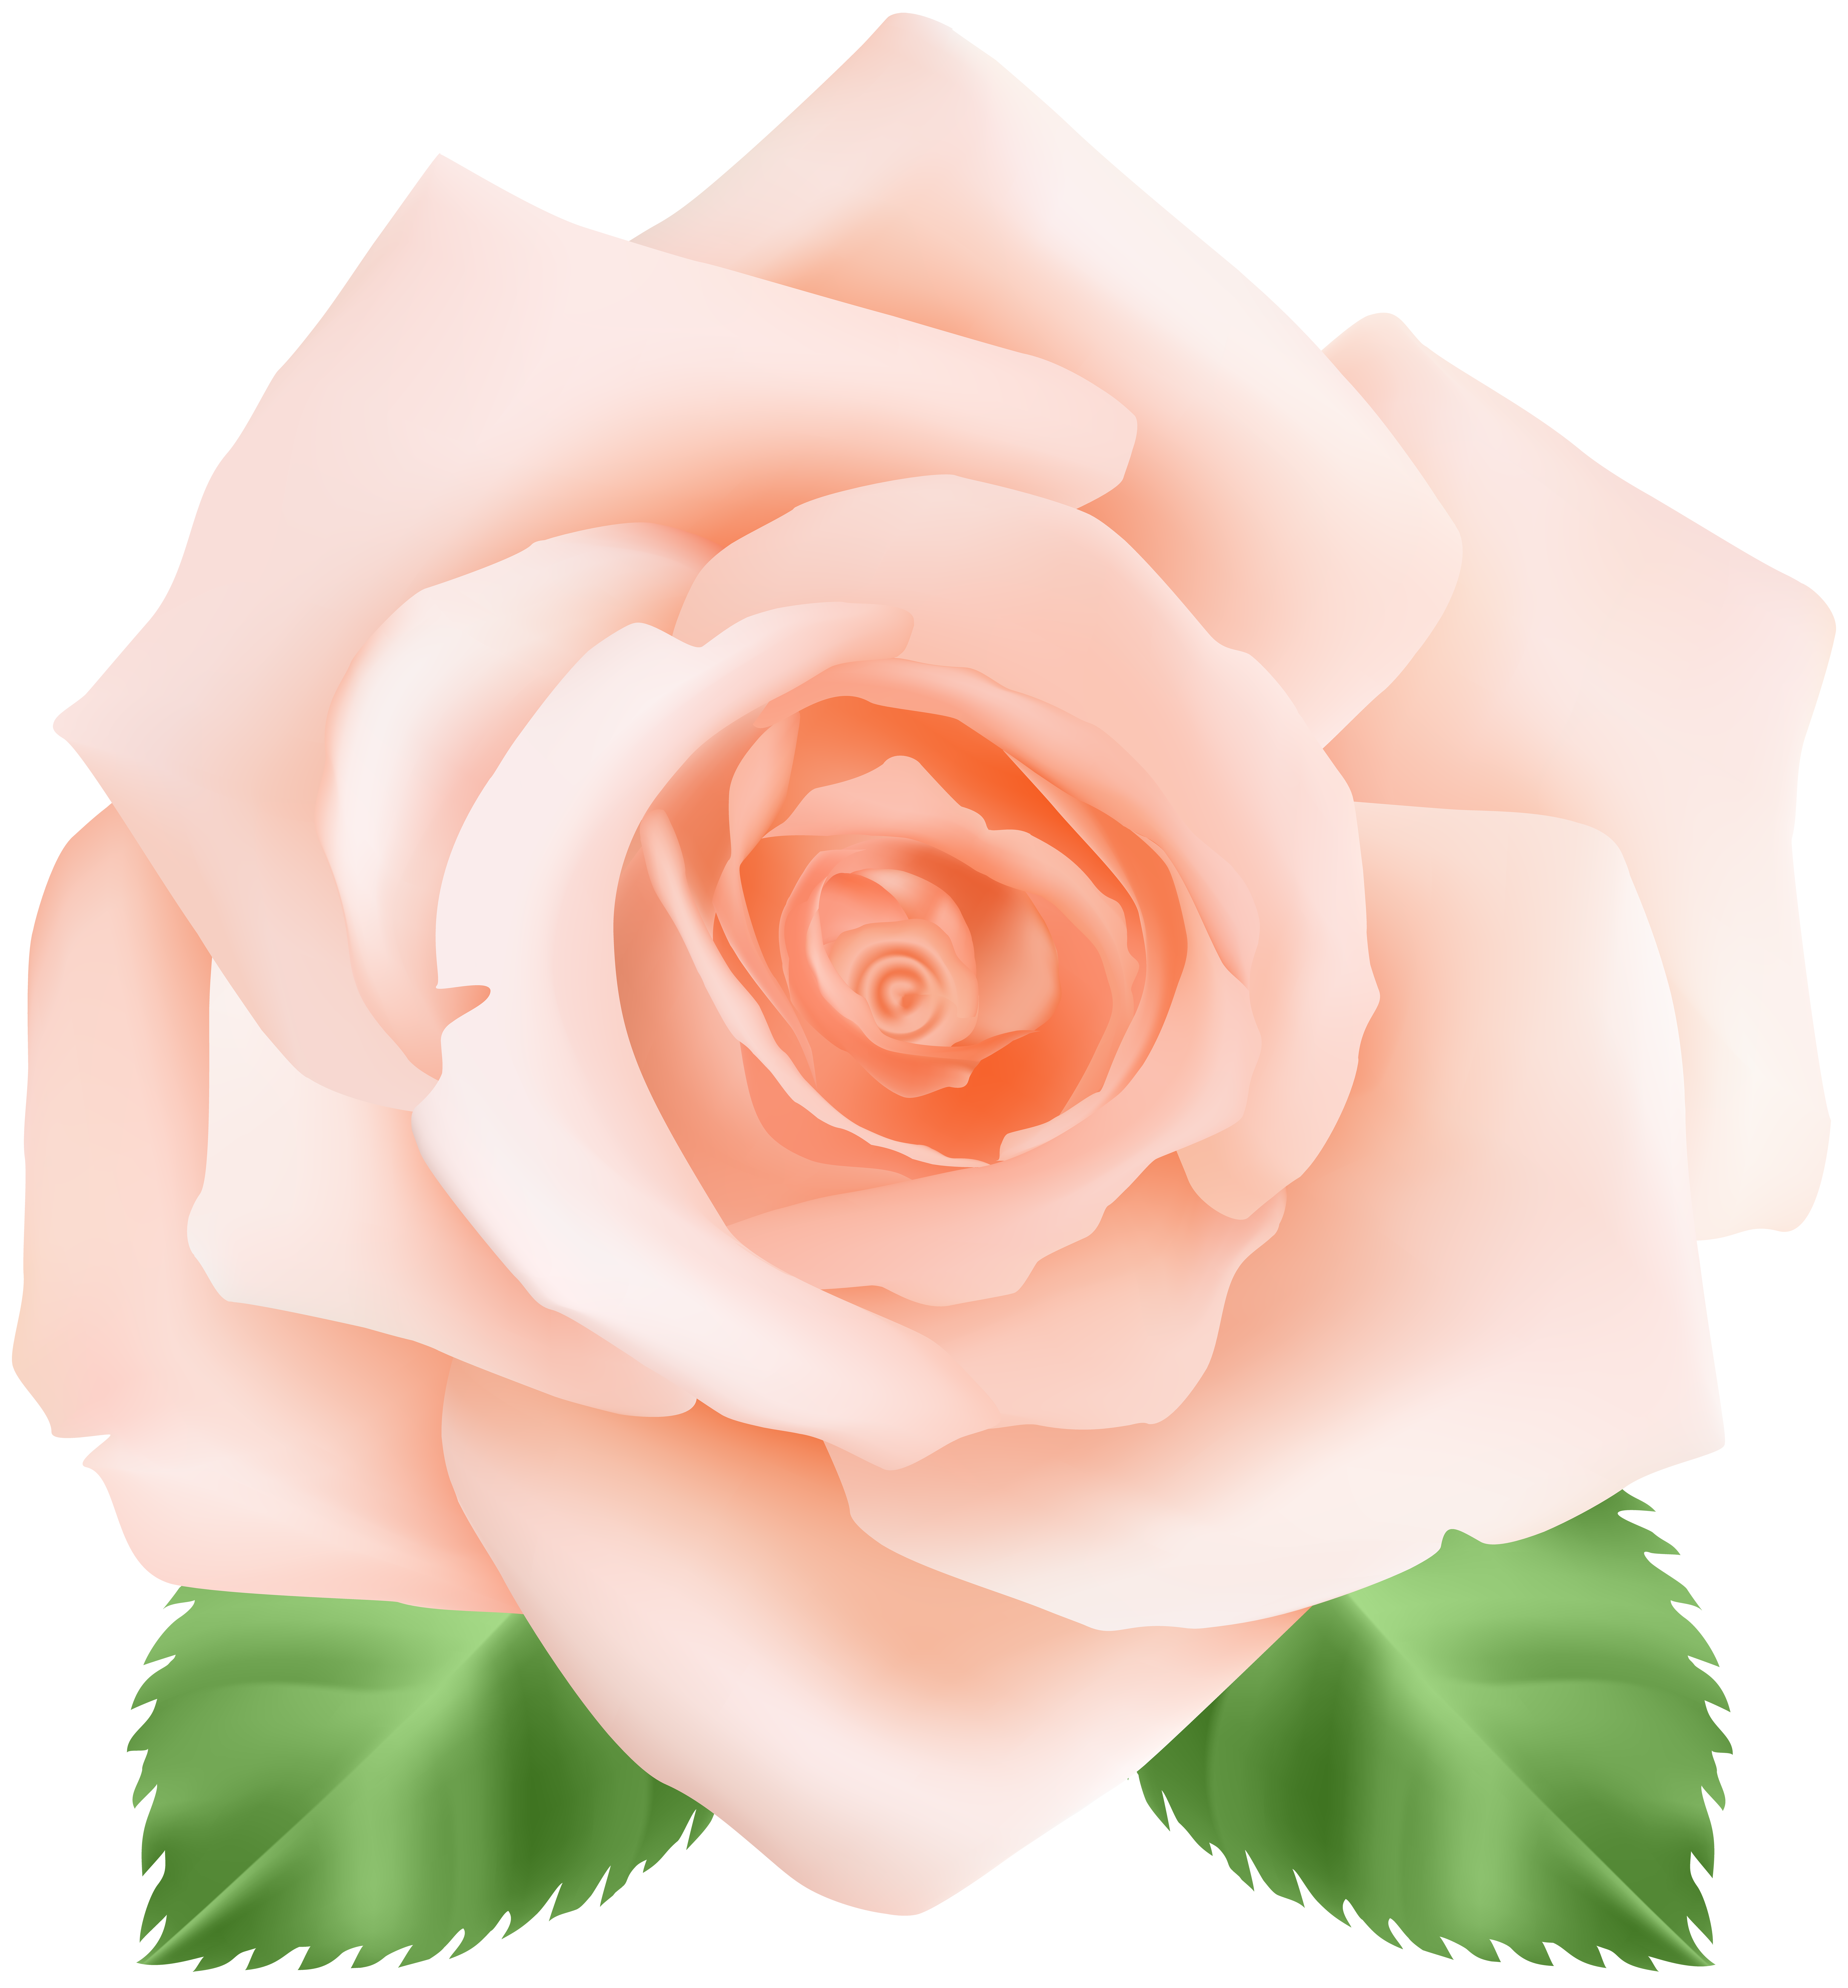 Peach color flower clipart png transparent Peach Rose PNG Clip Art Image | Gallery Yopriceville - High-Quality ... png transparent